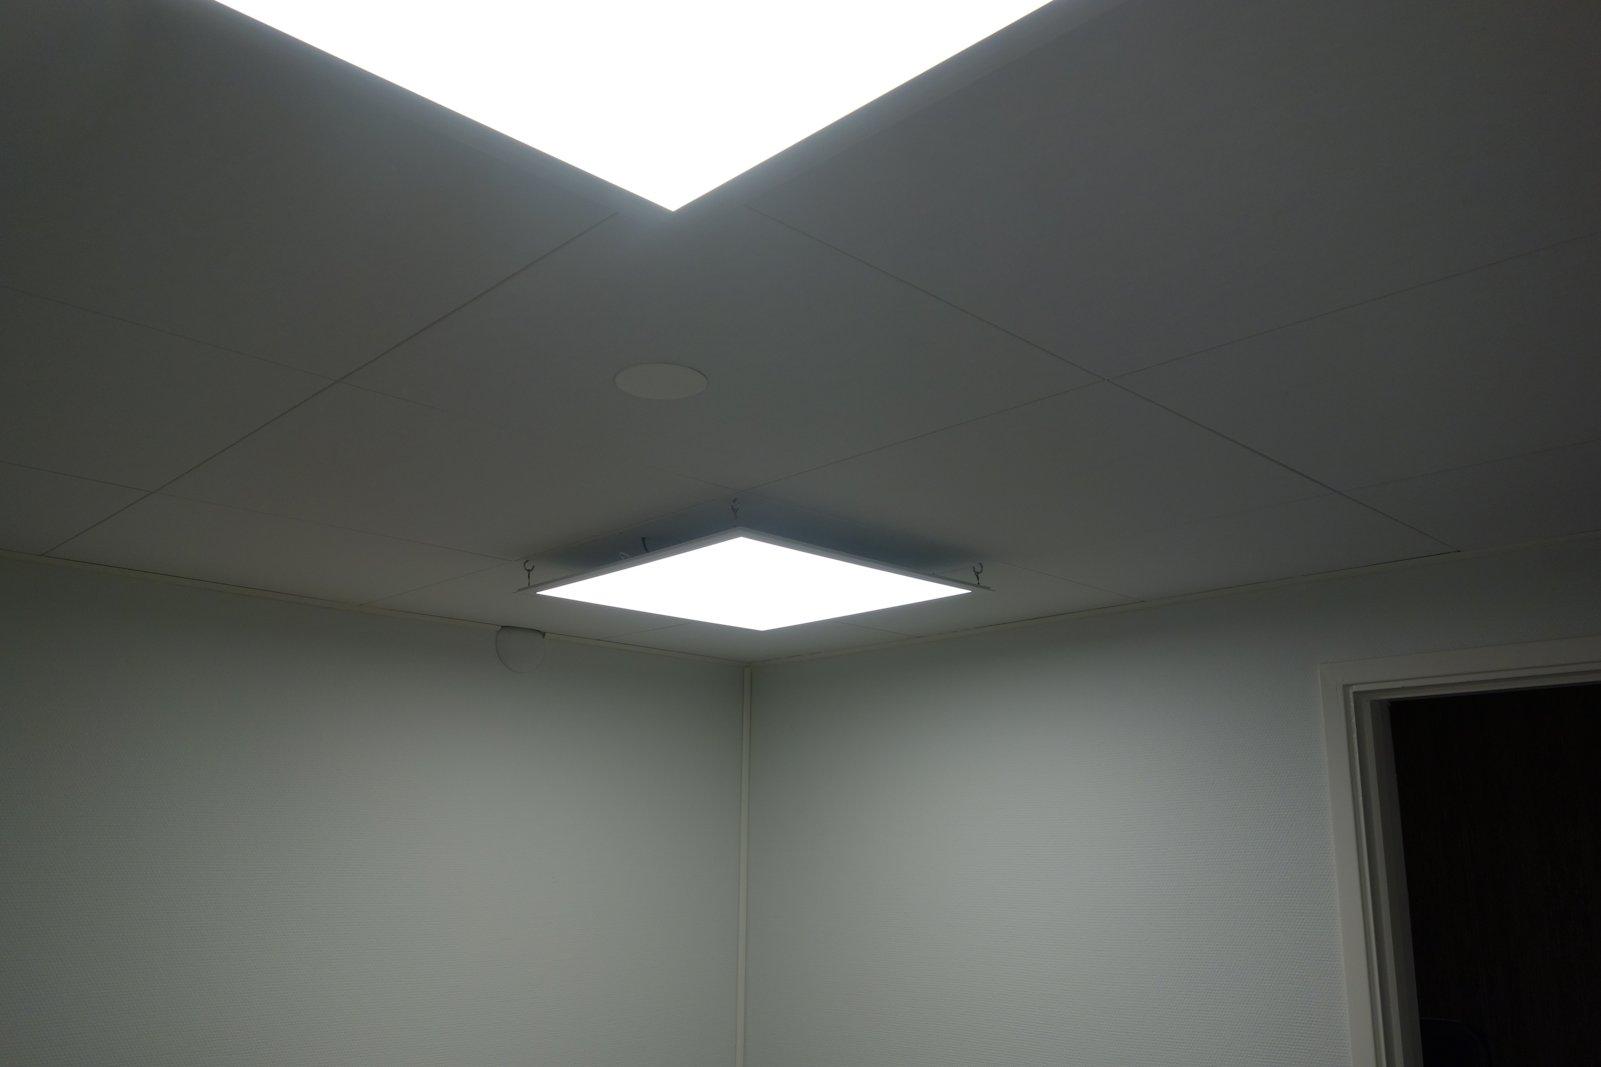 Ceiling with LED lights.